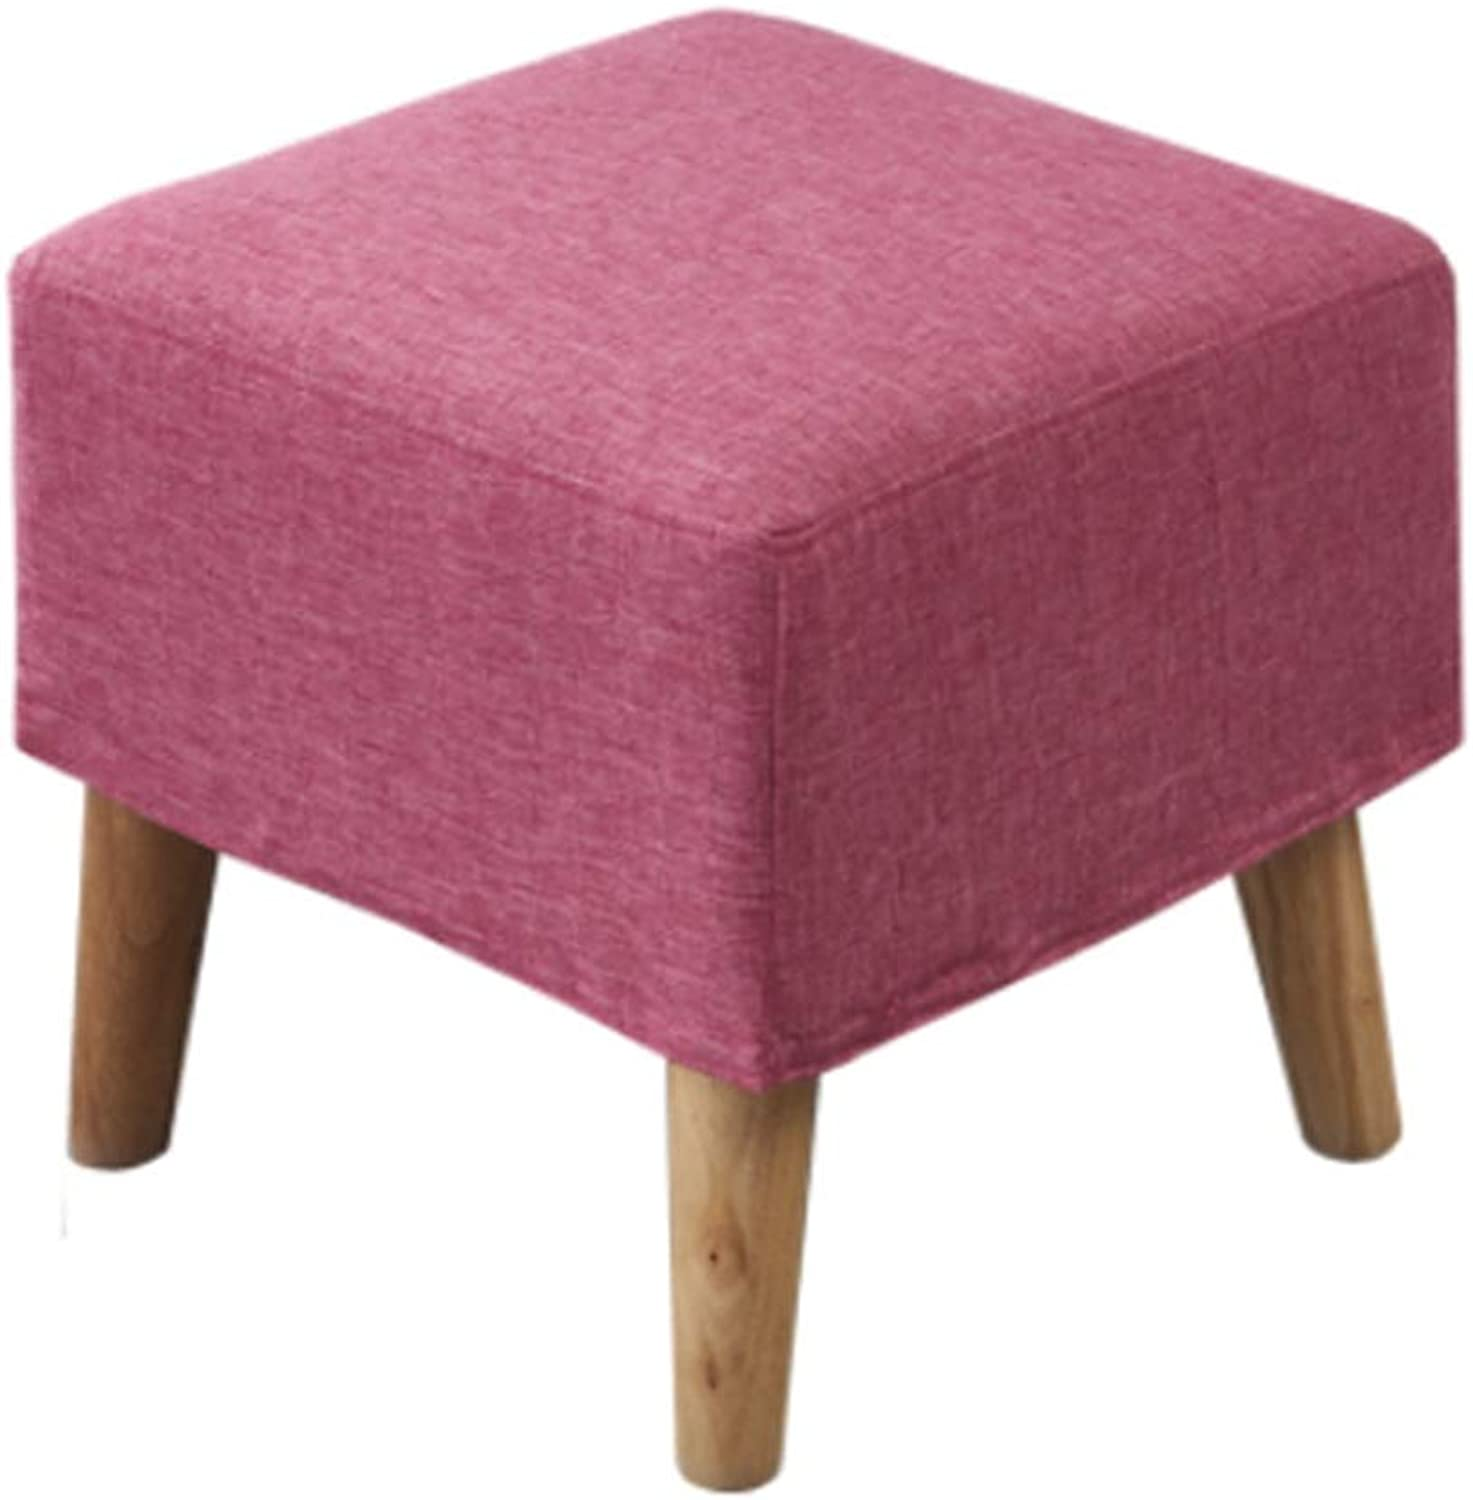 DYFYMX,Stylish Stool Change shoes Stool Fabric Removable and Washable Small Sofa Stool Solid Wood Foot Bed end Stool Furniture (color   C, Size   40x40x40cm)